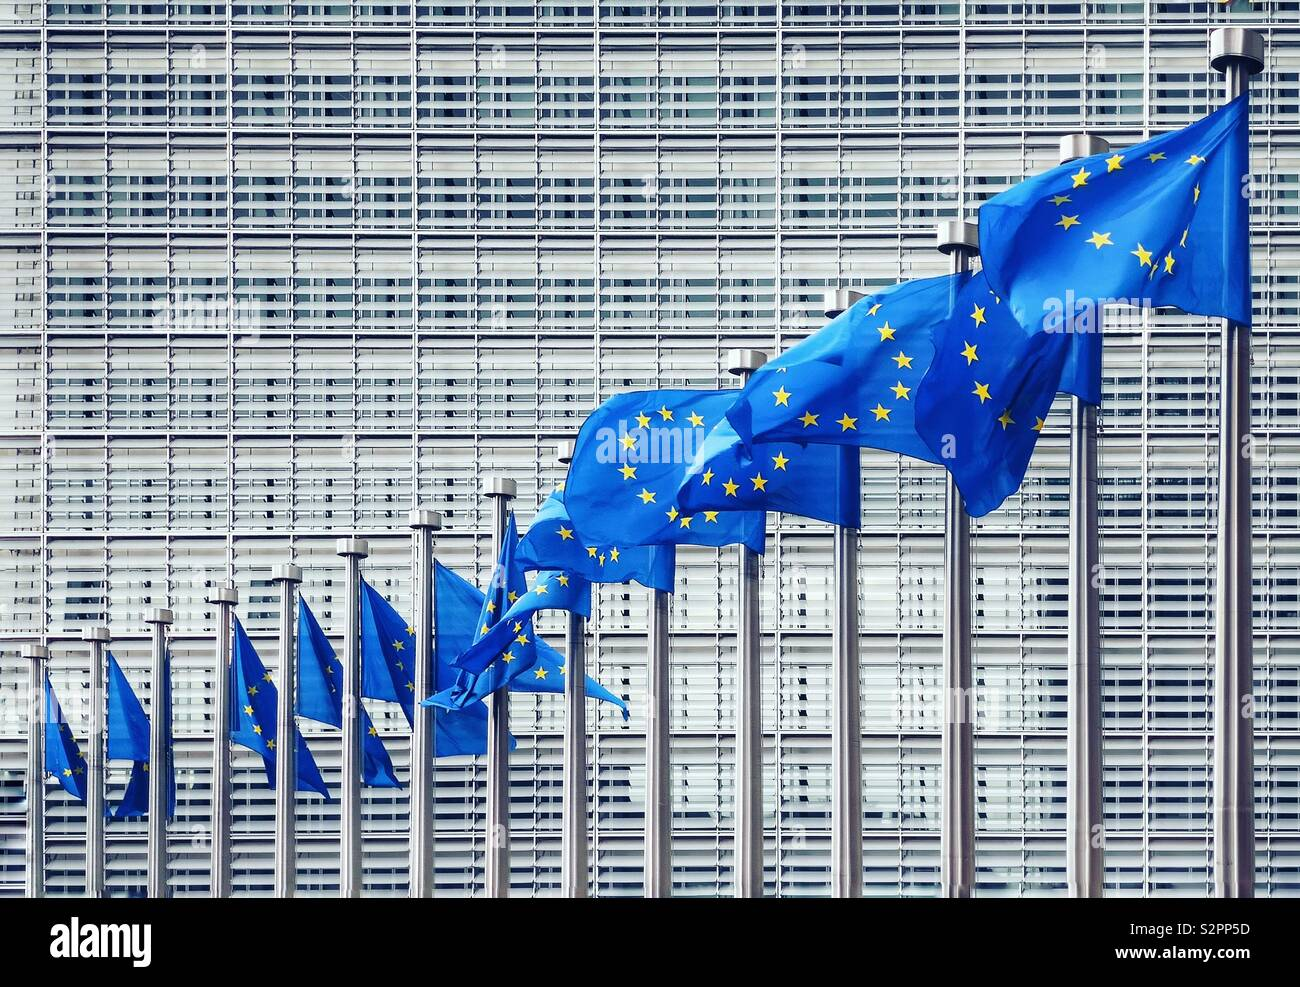 European Union flags flying in front of the European Commission building,Brussels - Stock Image